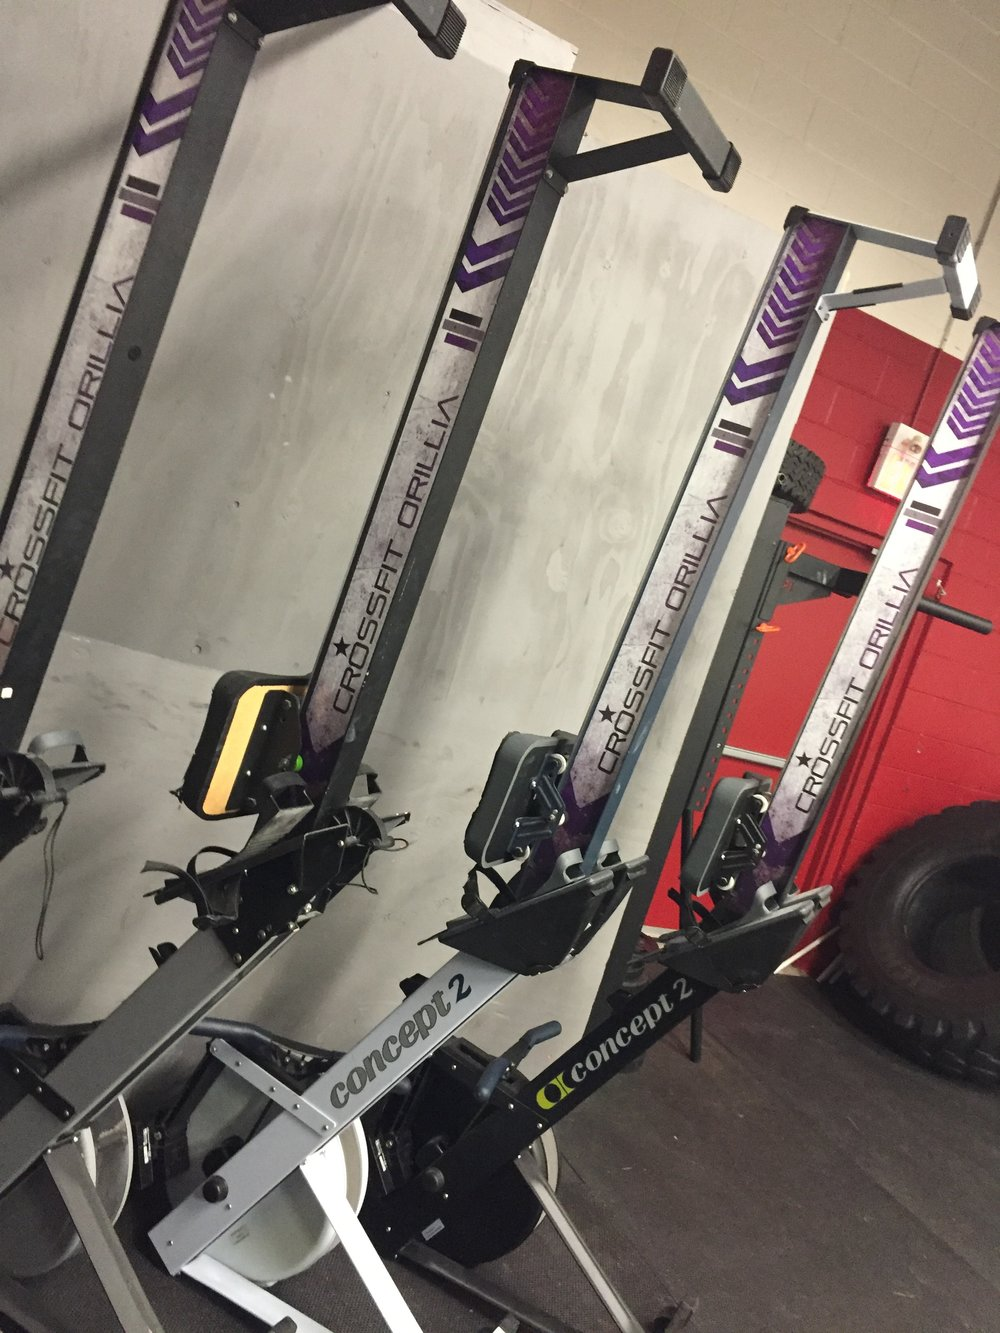 We decked out the ergs!  Check it out!